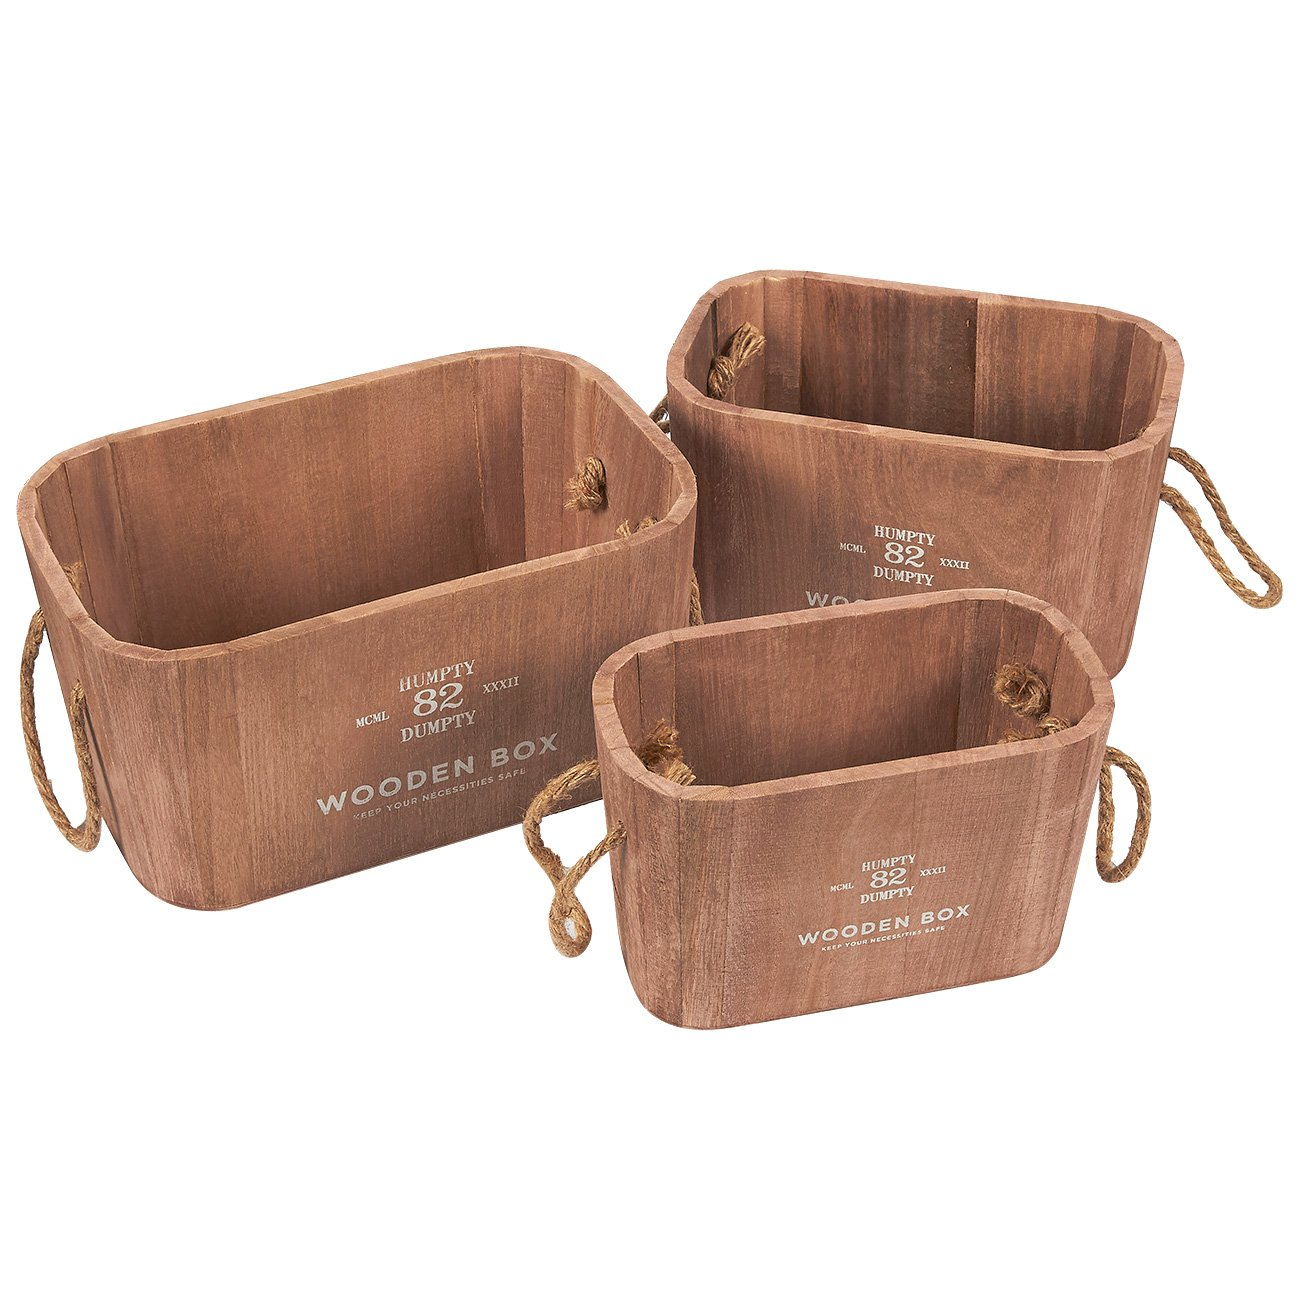 Juvale Wooden Basket – 3-Piece Rustic Wooden Buckets with Rope Handles, Wood Crates Rectangular Storage Bins, Decorative Organizing Baskets for Shelves, Brown - Small, Medium, Large